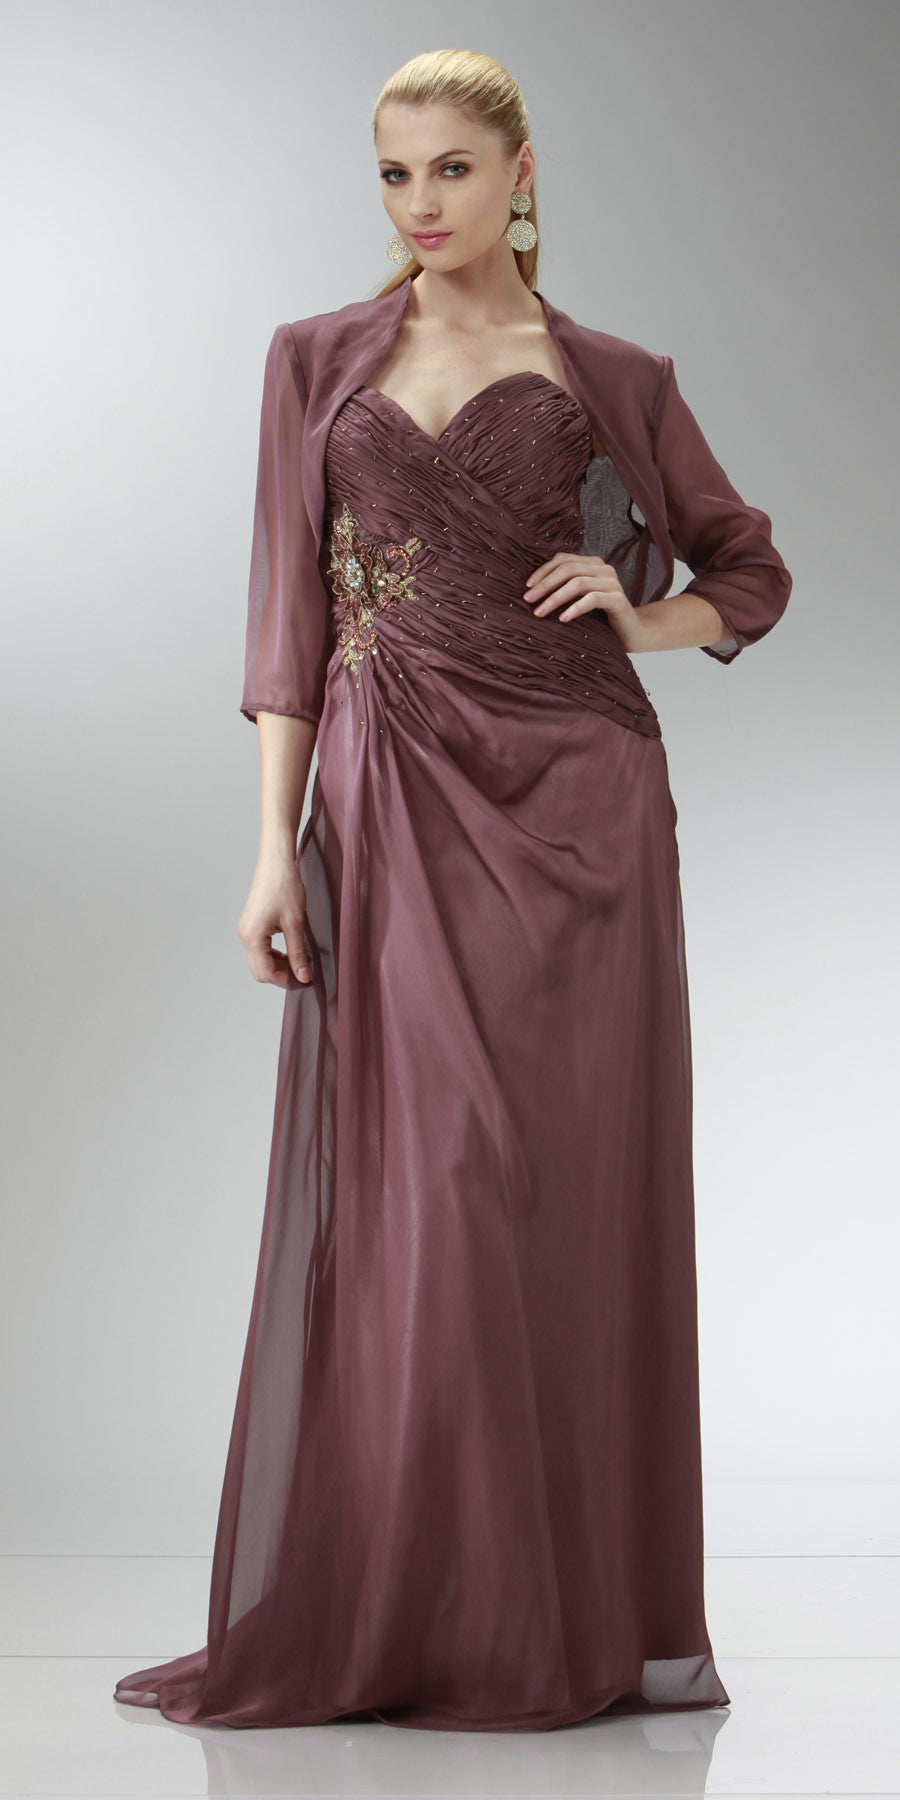 ON SPECIAL LIMITED STOCK - Rosewood Full Length Evening Dress Strapless Sweetheart Ruched Gown